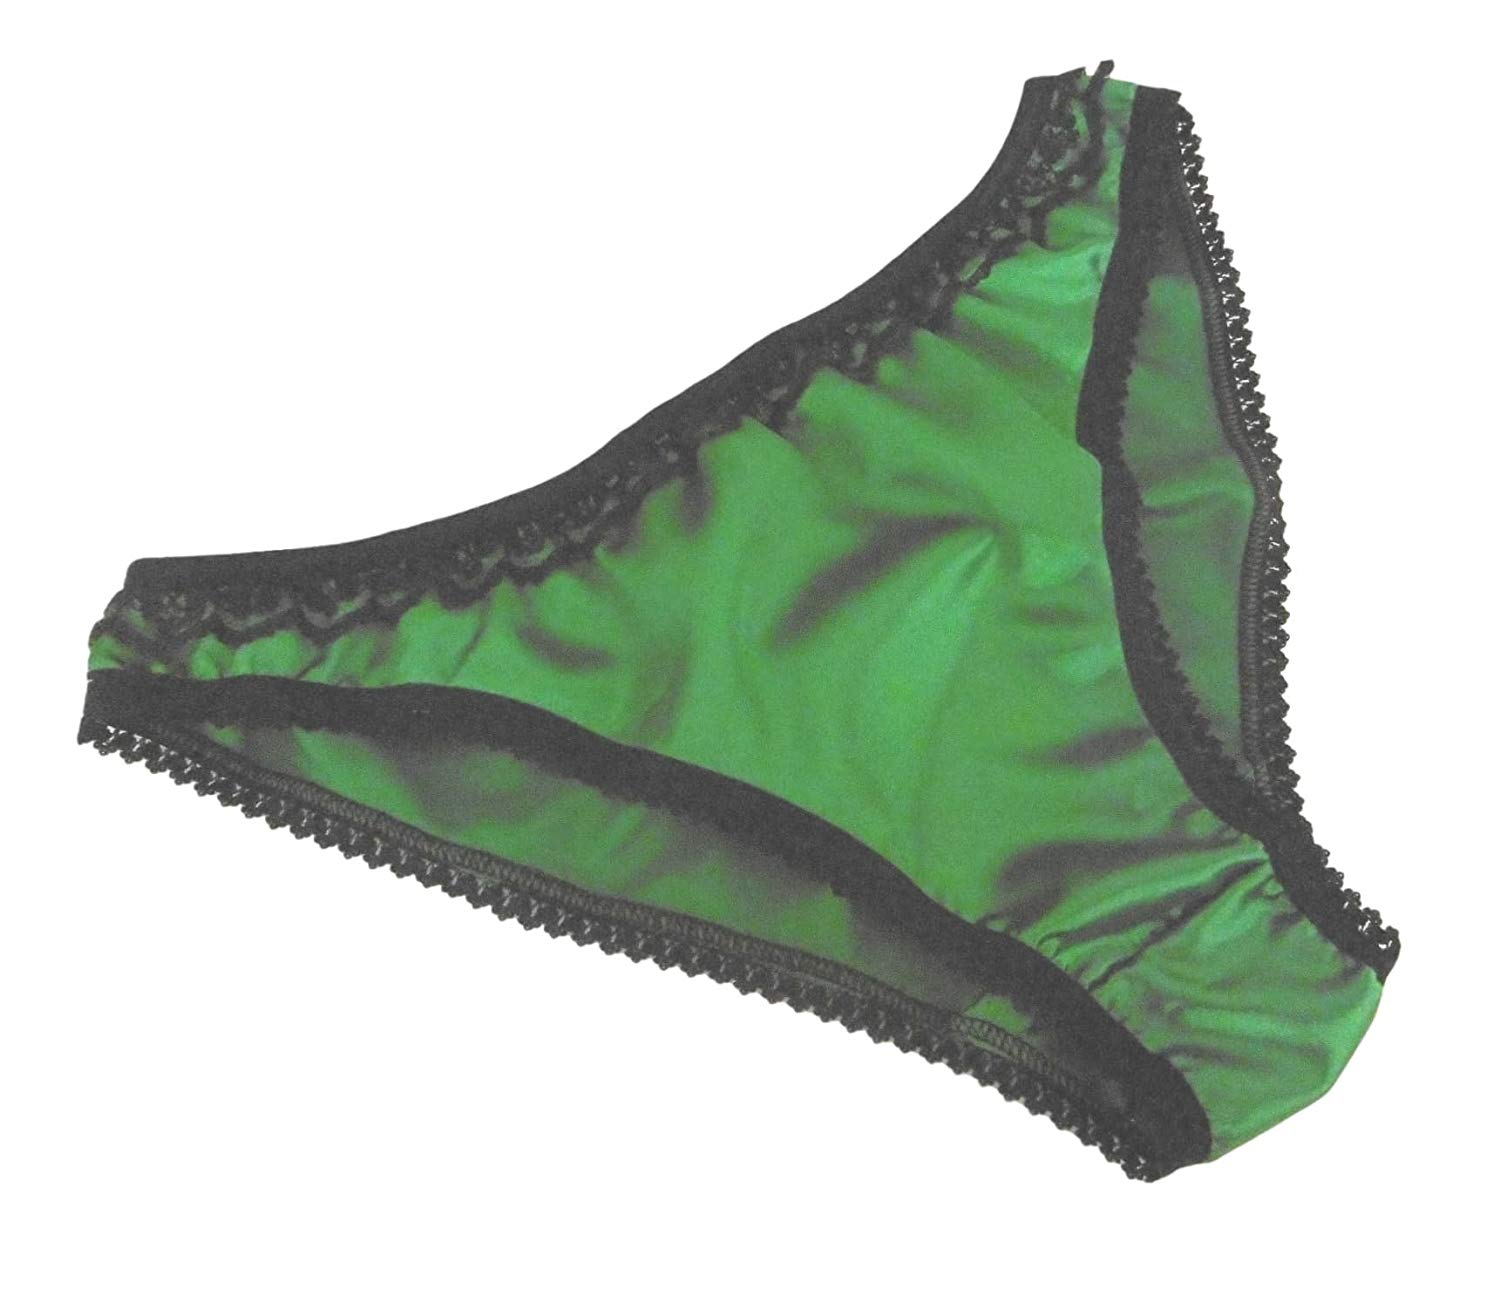 7c62d9fc74d Get Quotations · Shiny Satin Low Rise Bikini Brief Panties Emerald Green  with Black Lace 6 Sizes Made in